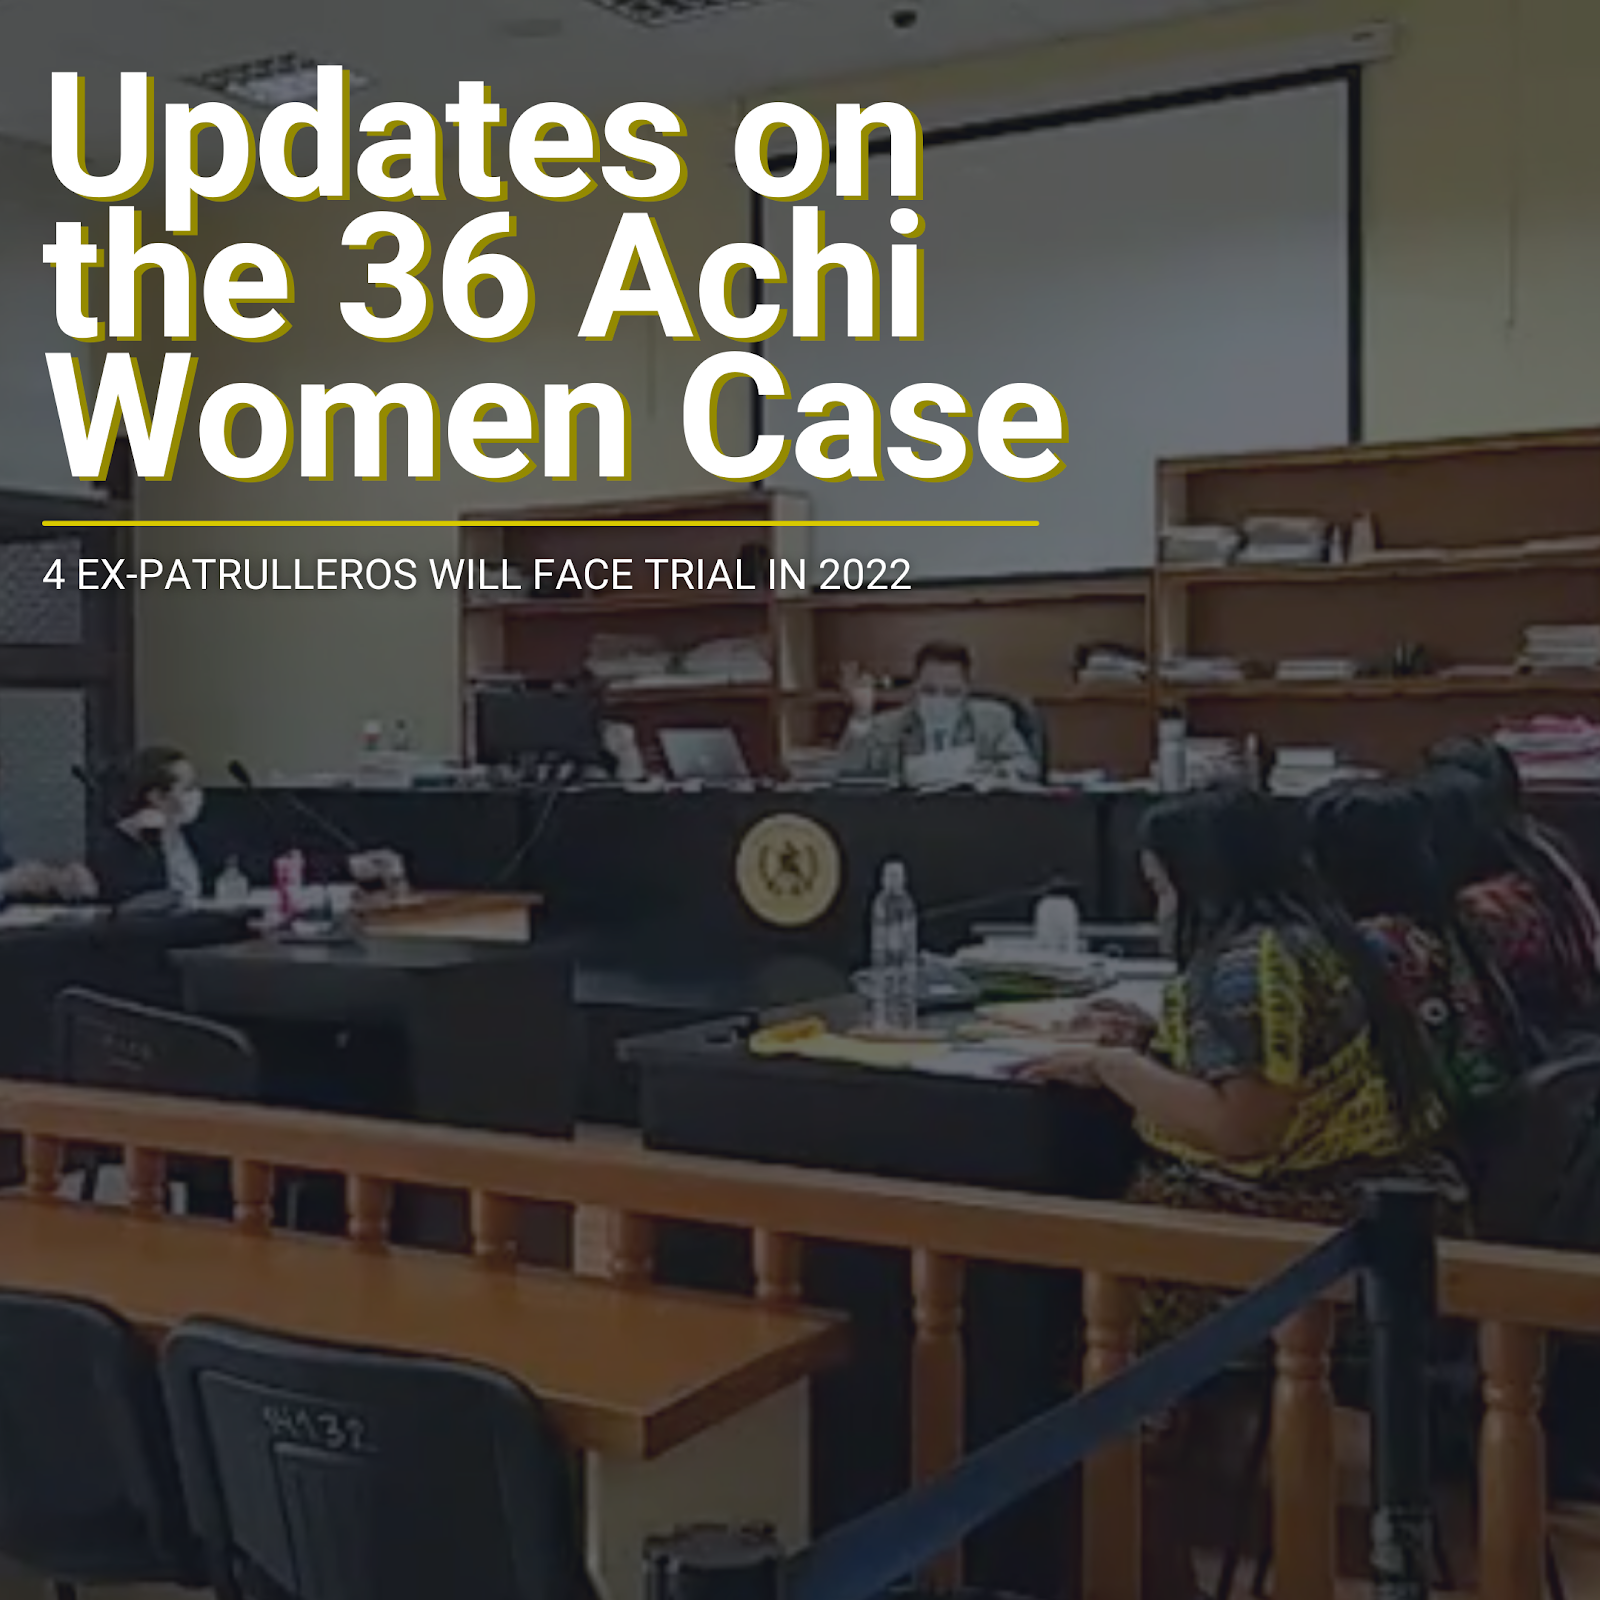 "Image of a Guatemalan court room superimposed with ""Updates on the 36 Achi women Case: 4 ex patrulleros will face trial in 2022"""